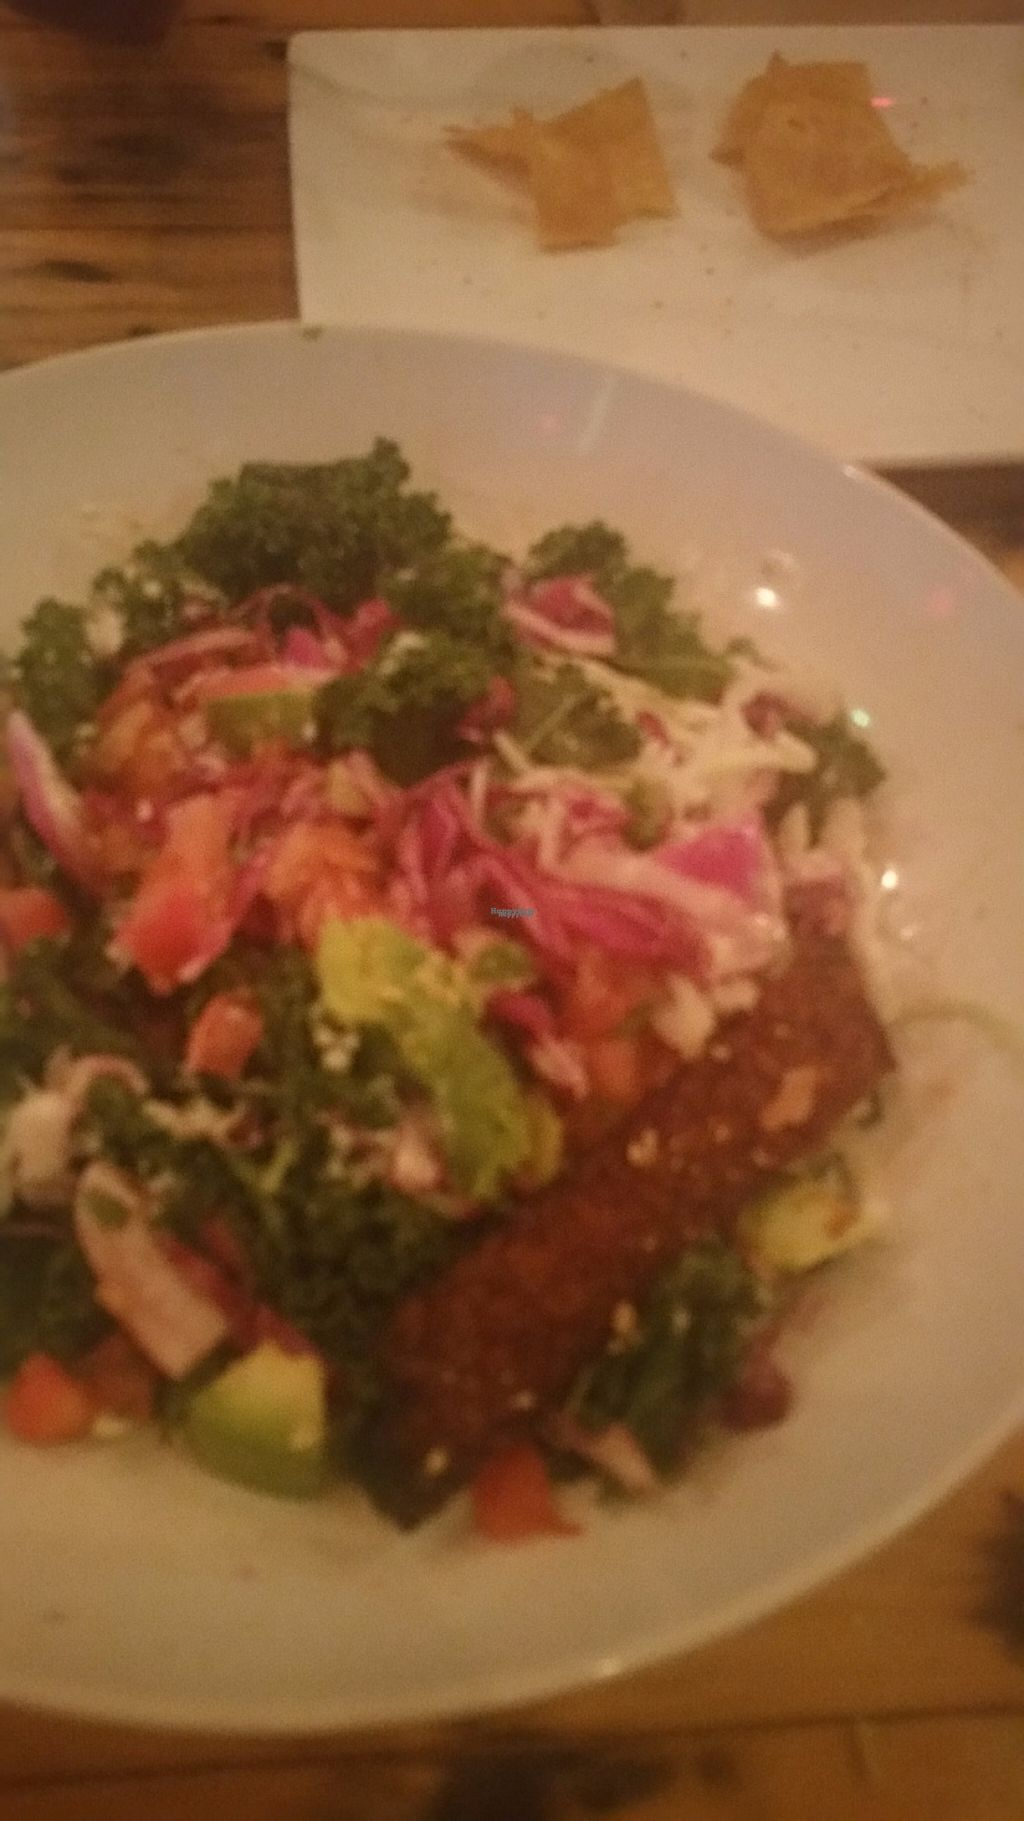 """Photo of Tucos Taco Lounge  by <a href=""""/members/profile/LPT"""">LPT</a> <br/>Kels Cesar Chavez Salad <br/> November 11, 2016  - <a href='/contact/abuse/image/53957/188736'>Report</a>"""